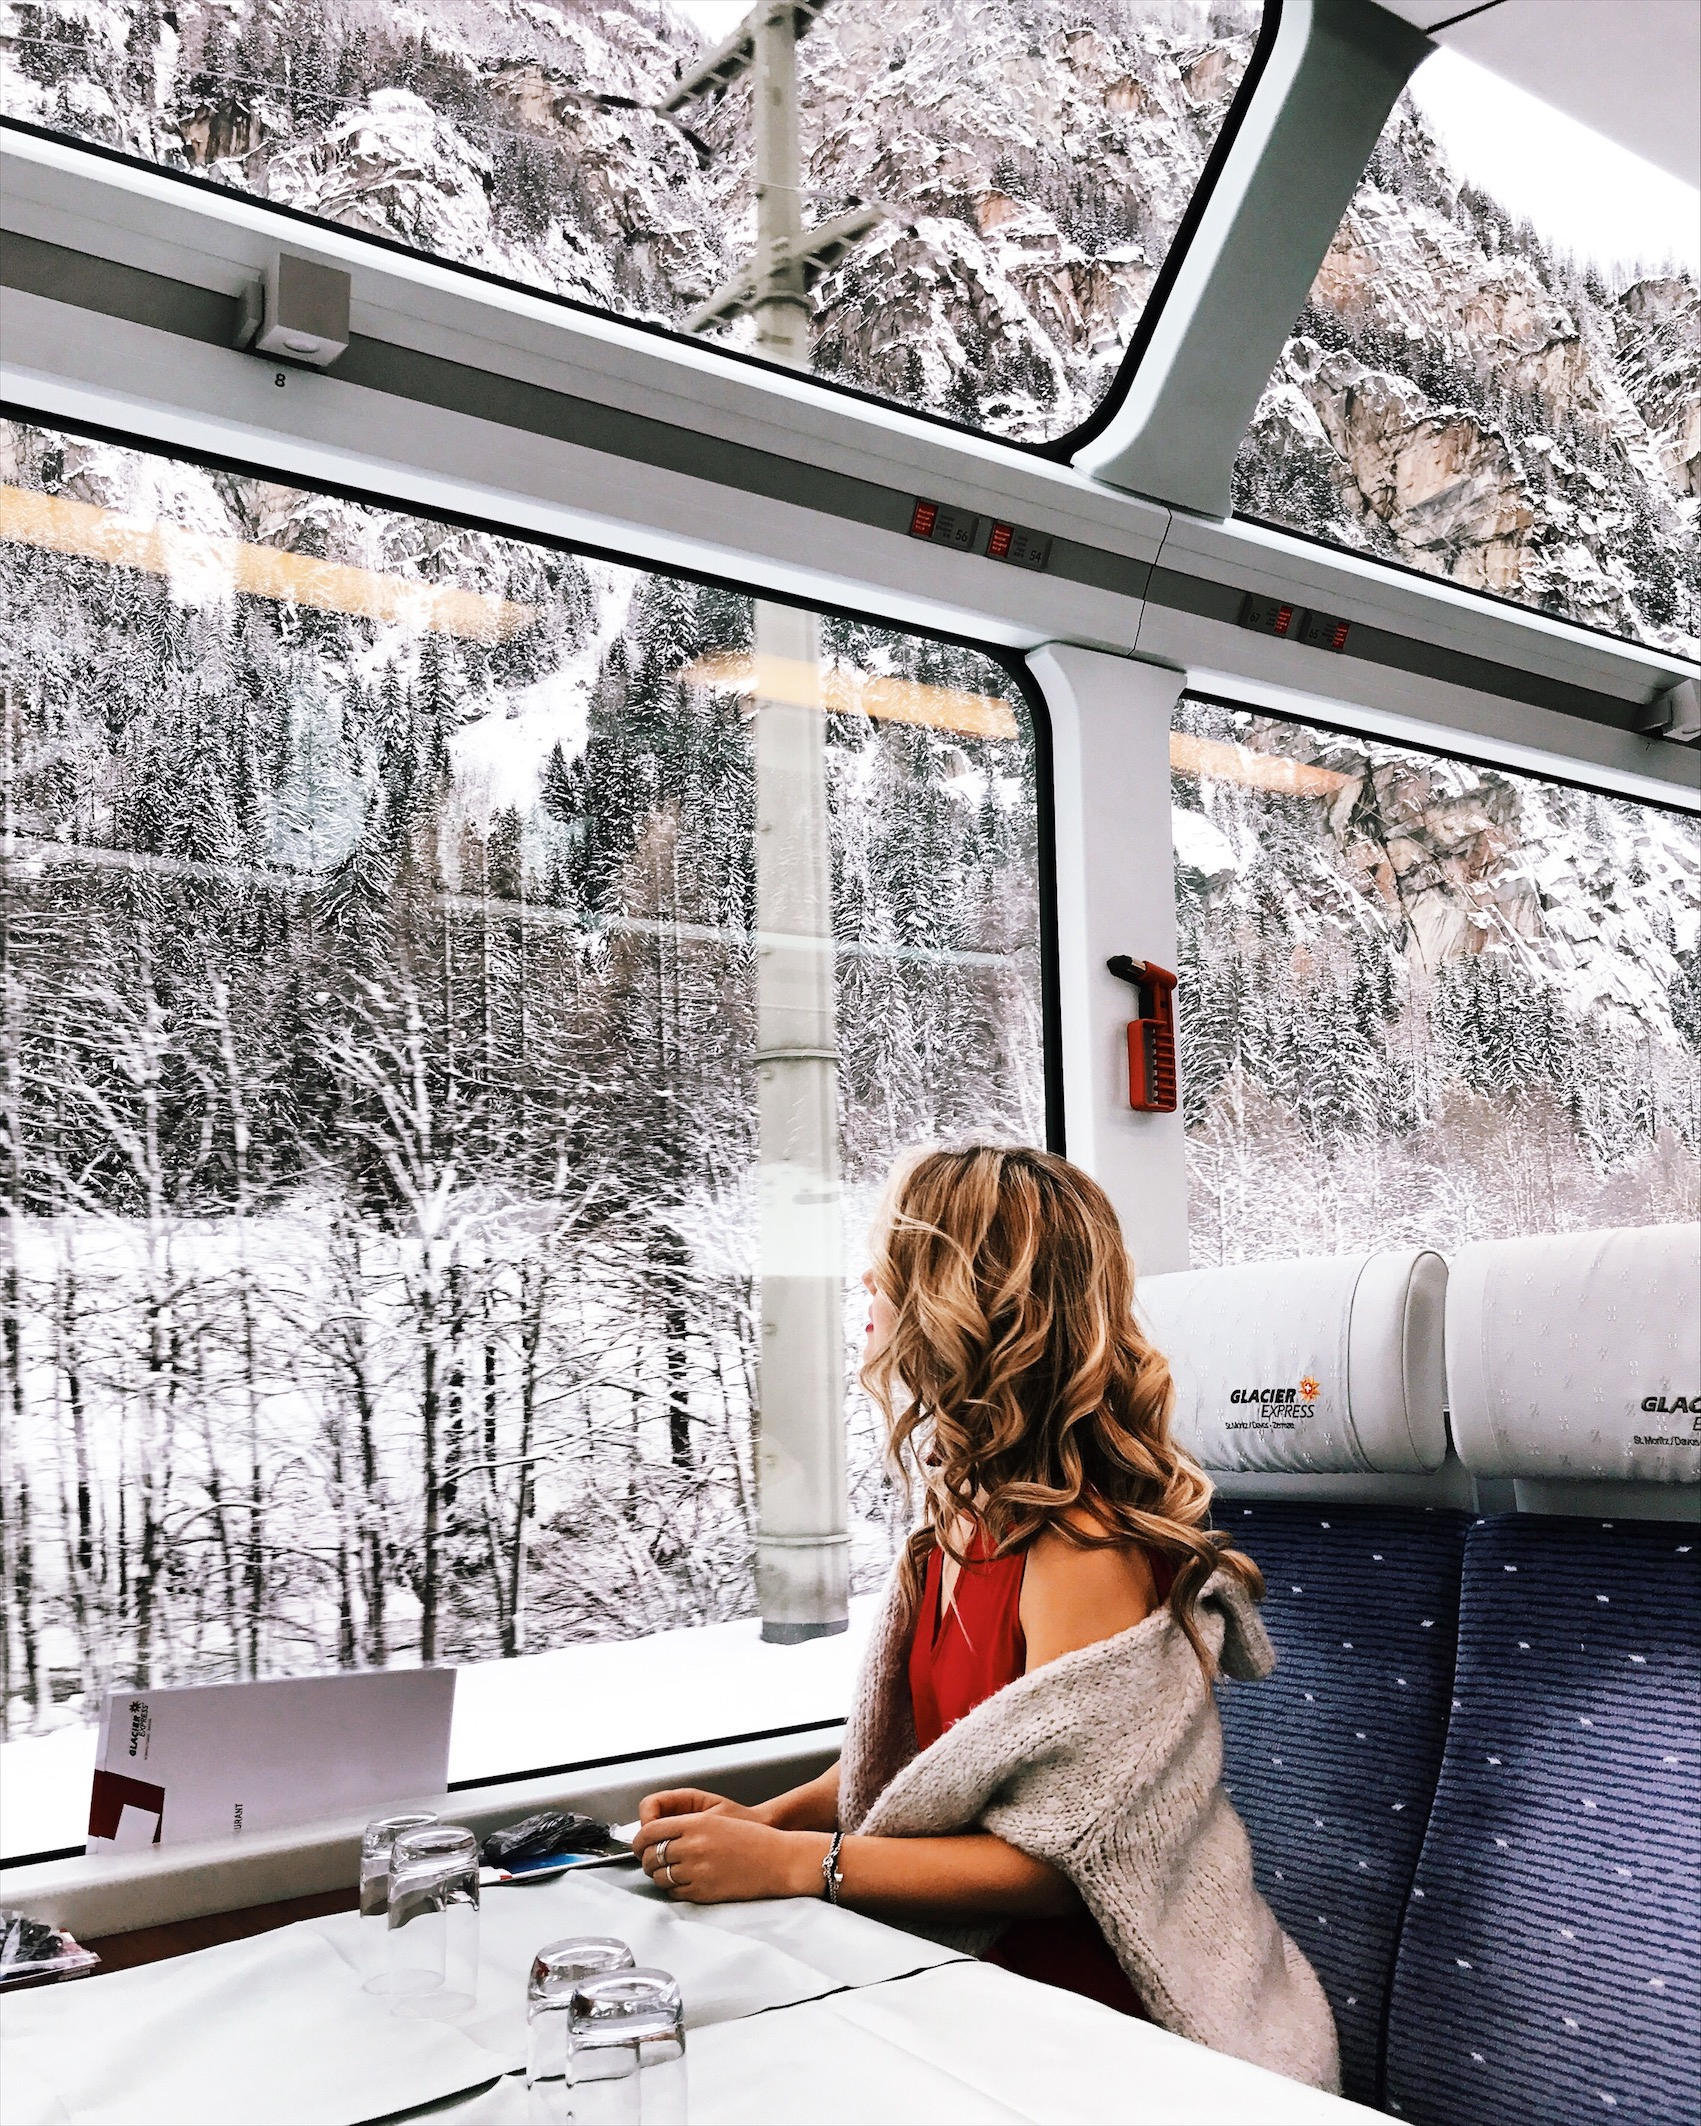 Glacier Express travel through Alps in Switzerland